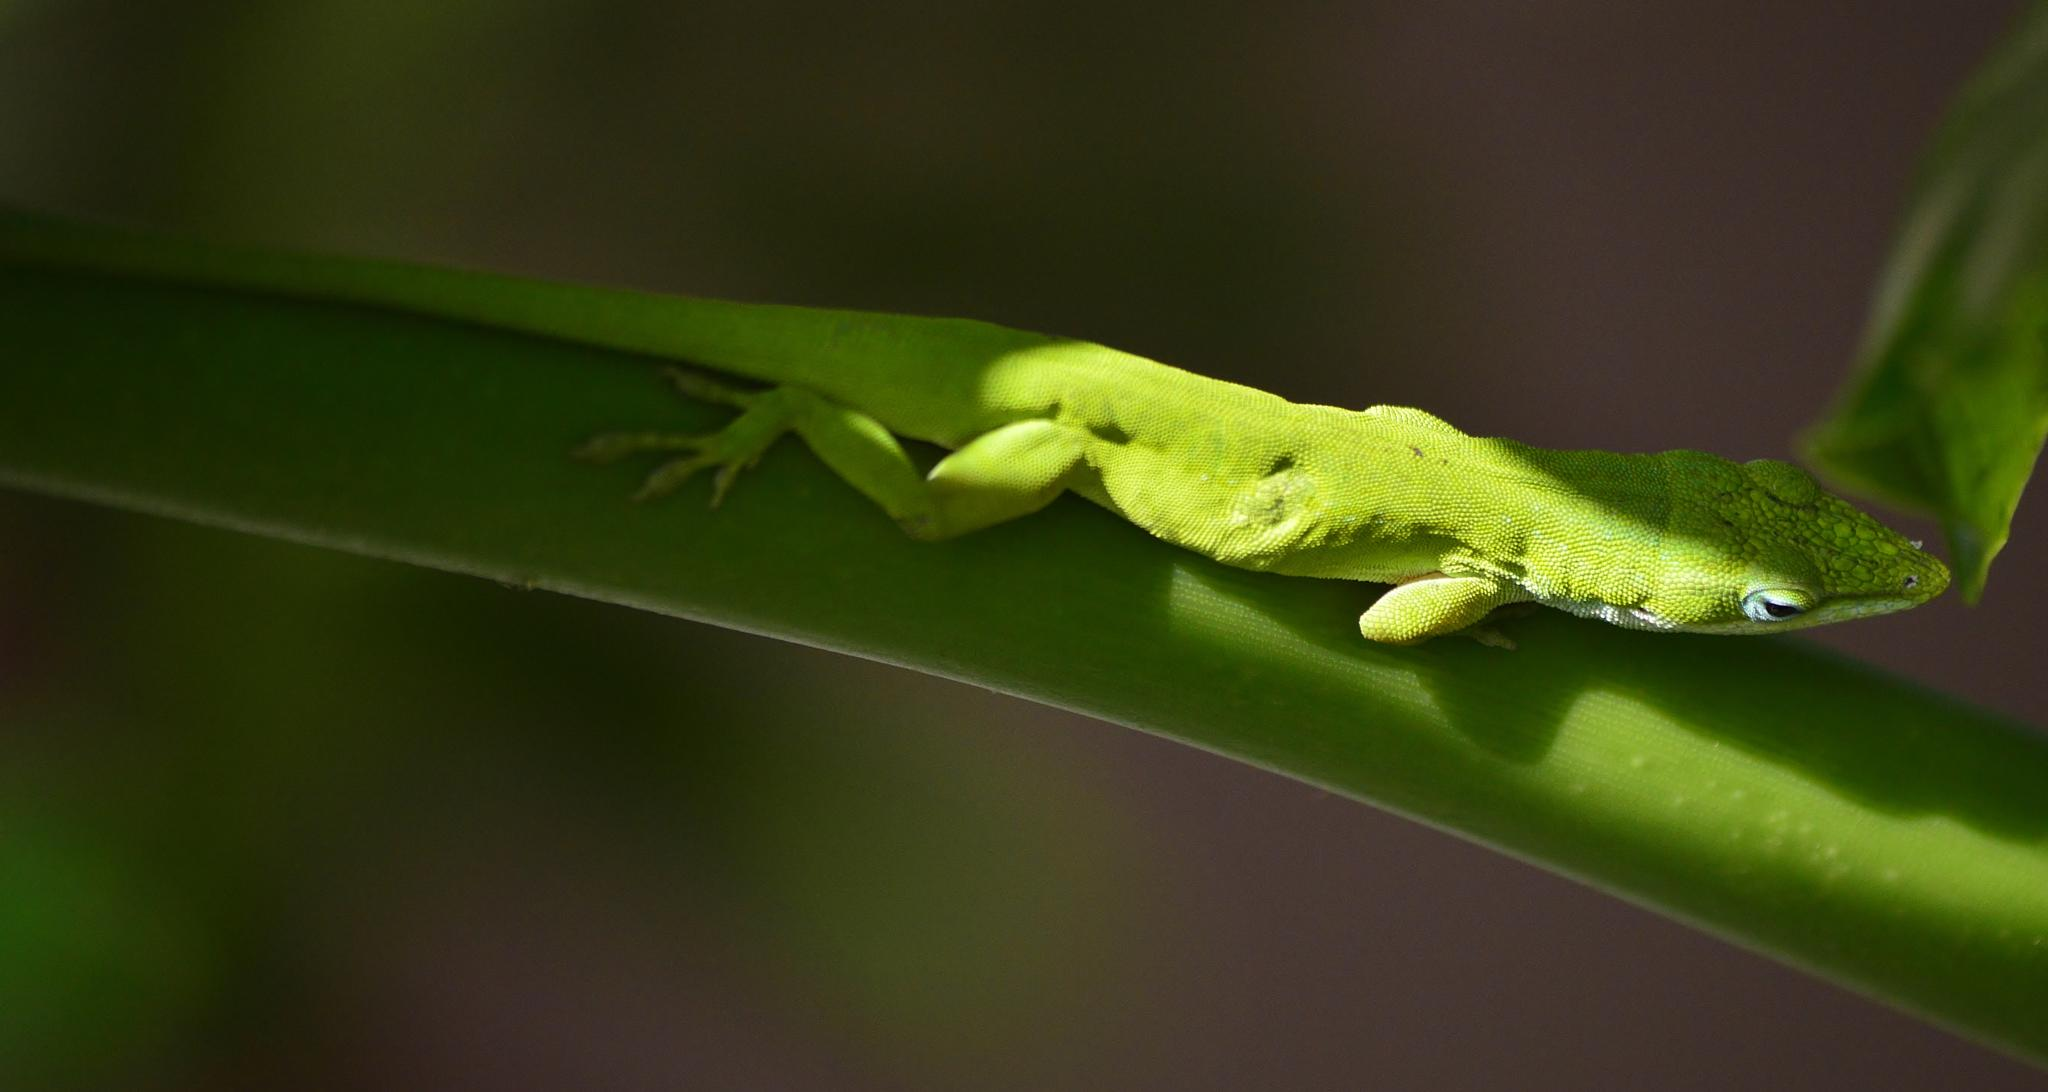 Ive known this Green anole for 3 years. by jamie.dorton